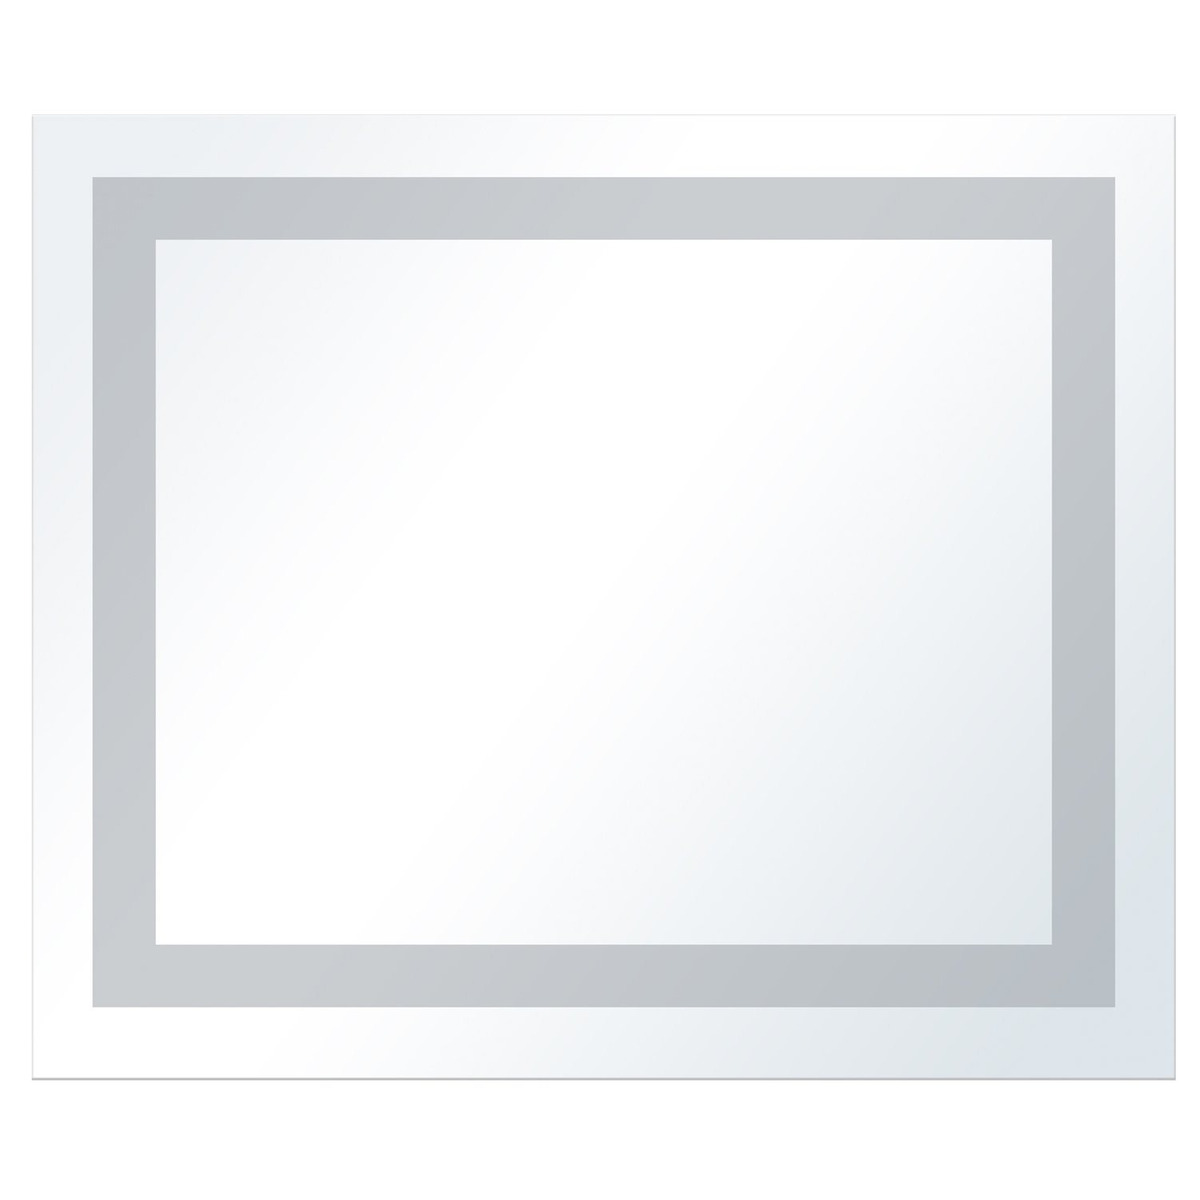 Picture of: Getinlight Led Wall Mounted Lighted Vanity Mirror 3000k Sof 1 941 900 En Mercado Libre